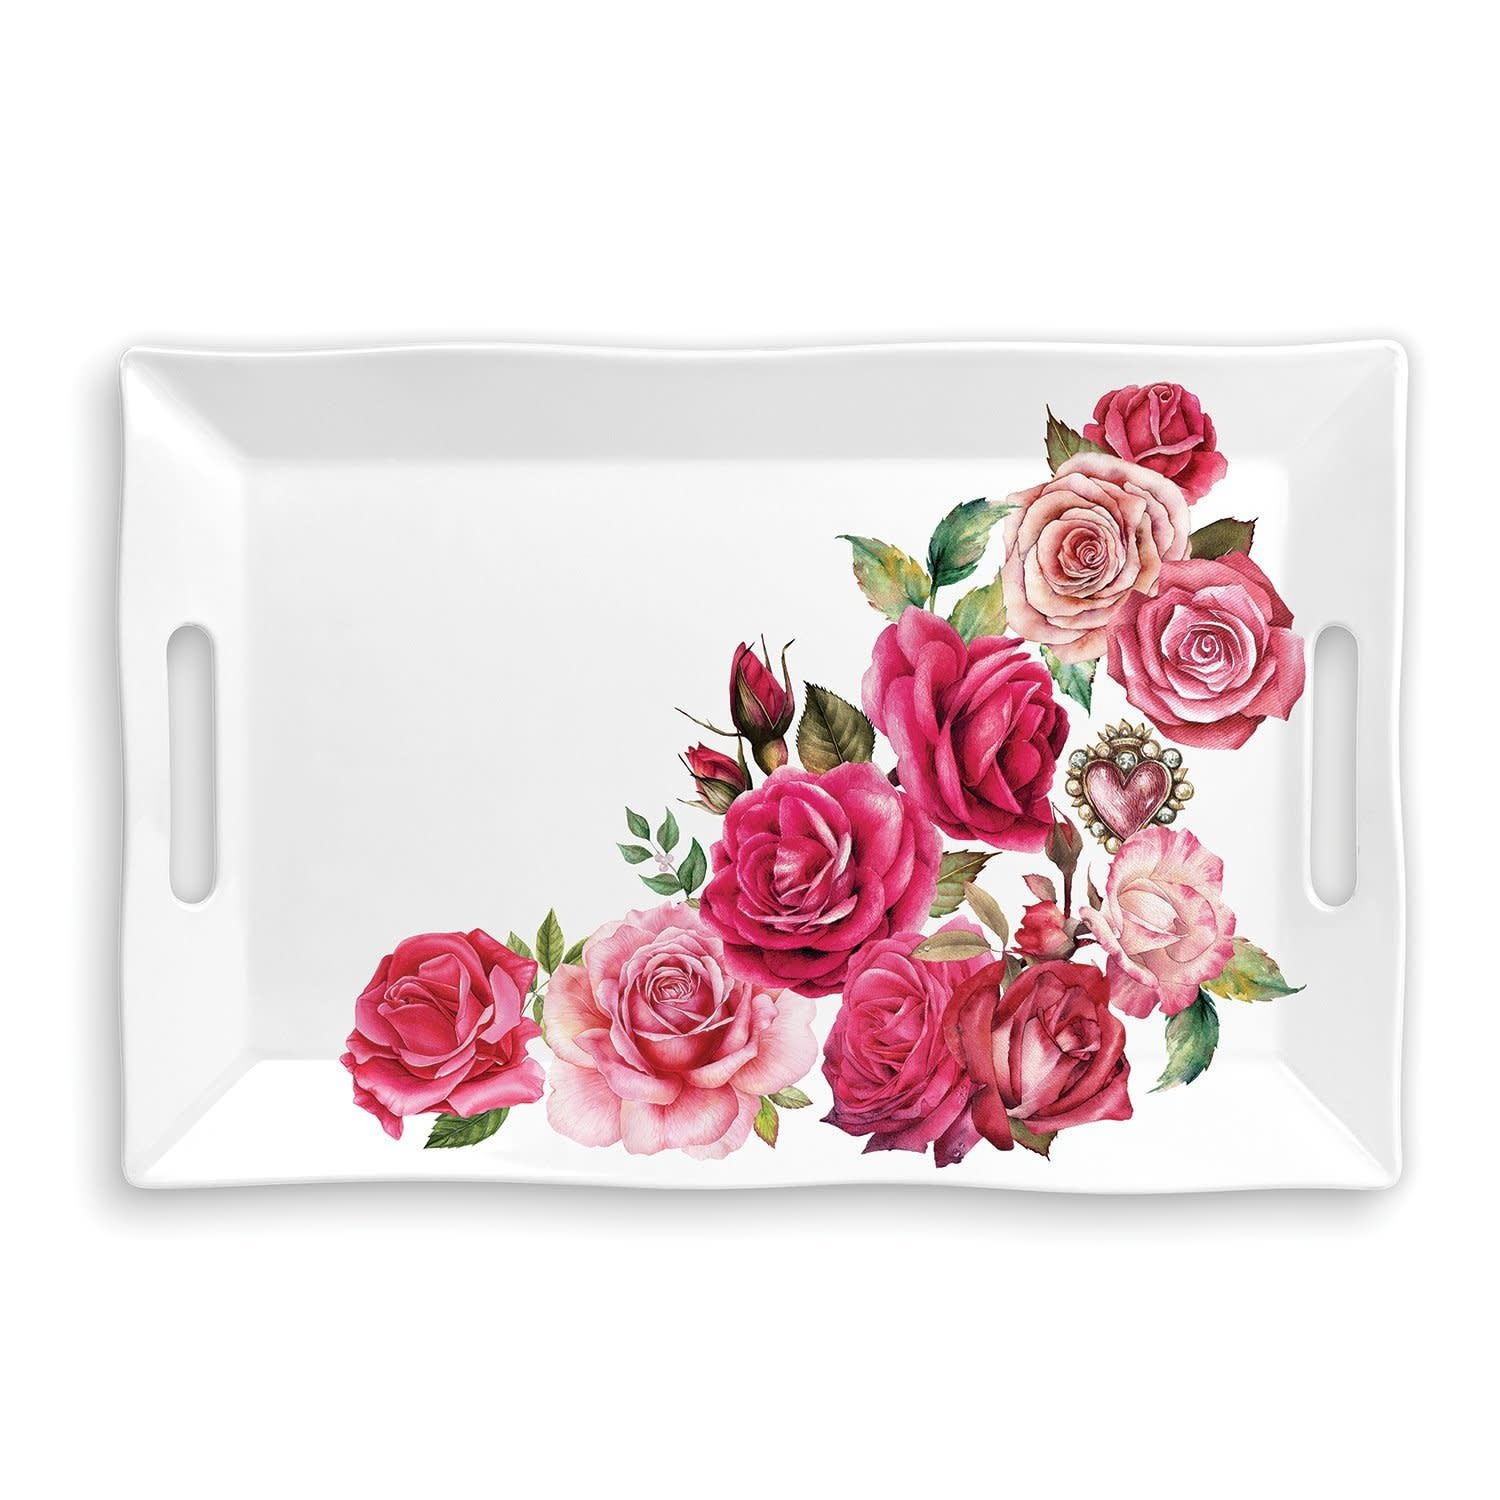 Michel Design Works Royal Rose Melamine Serveware Large Tray